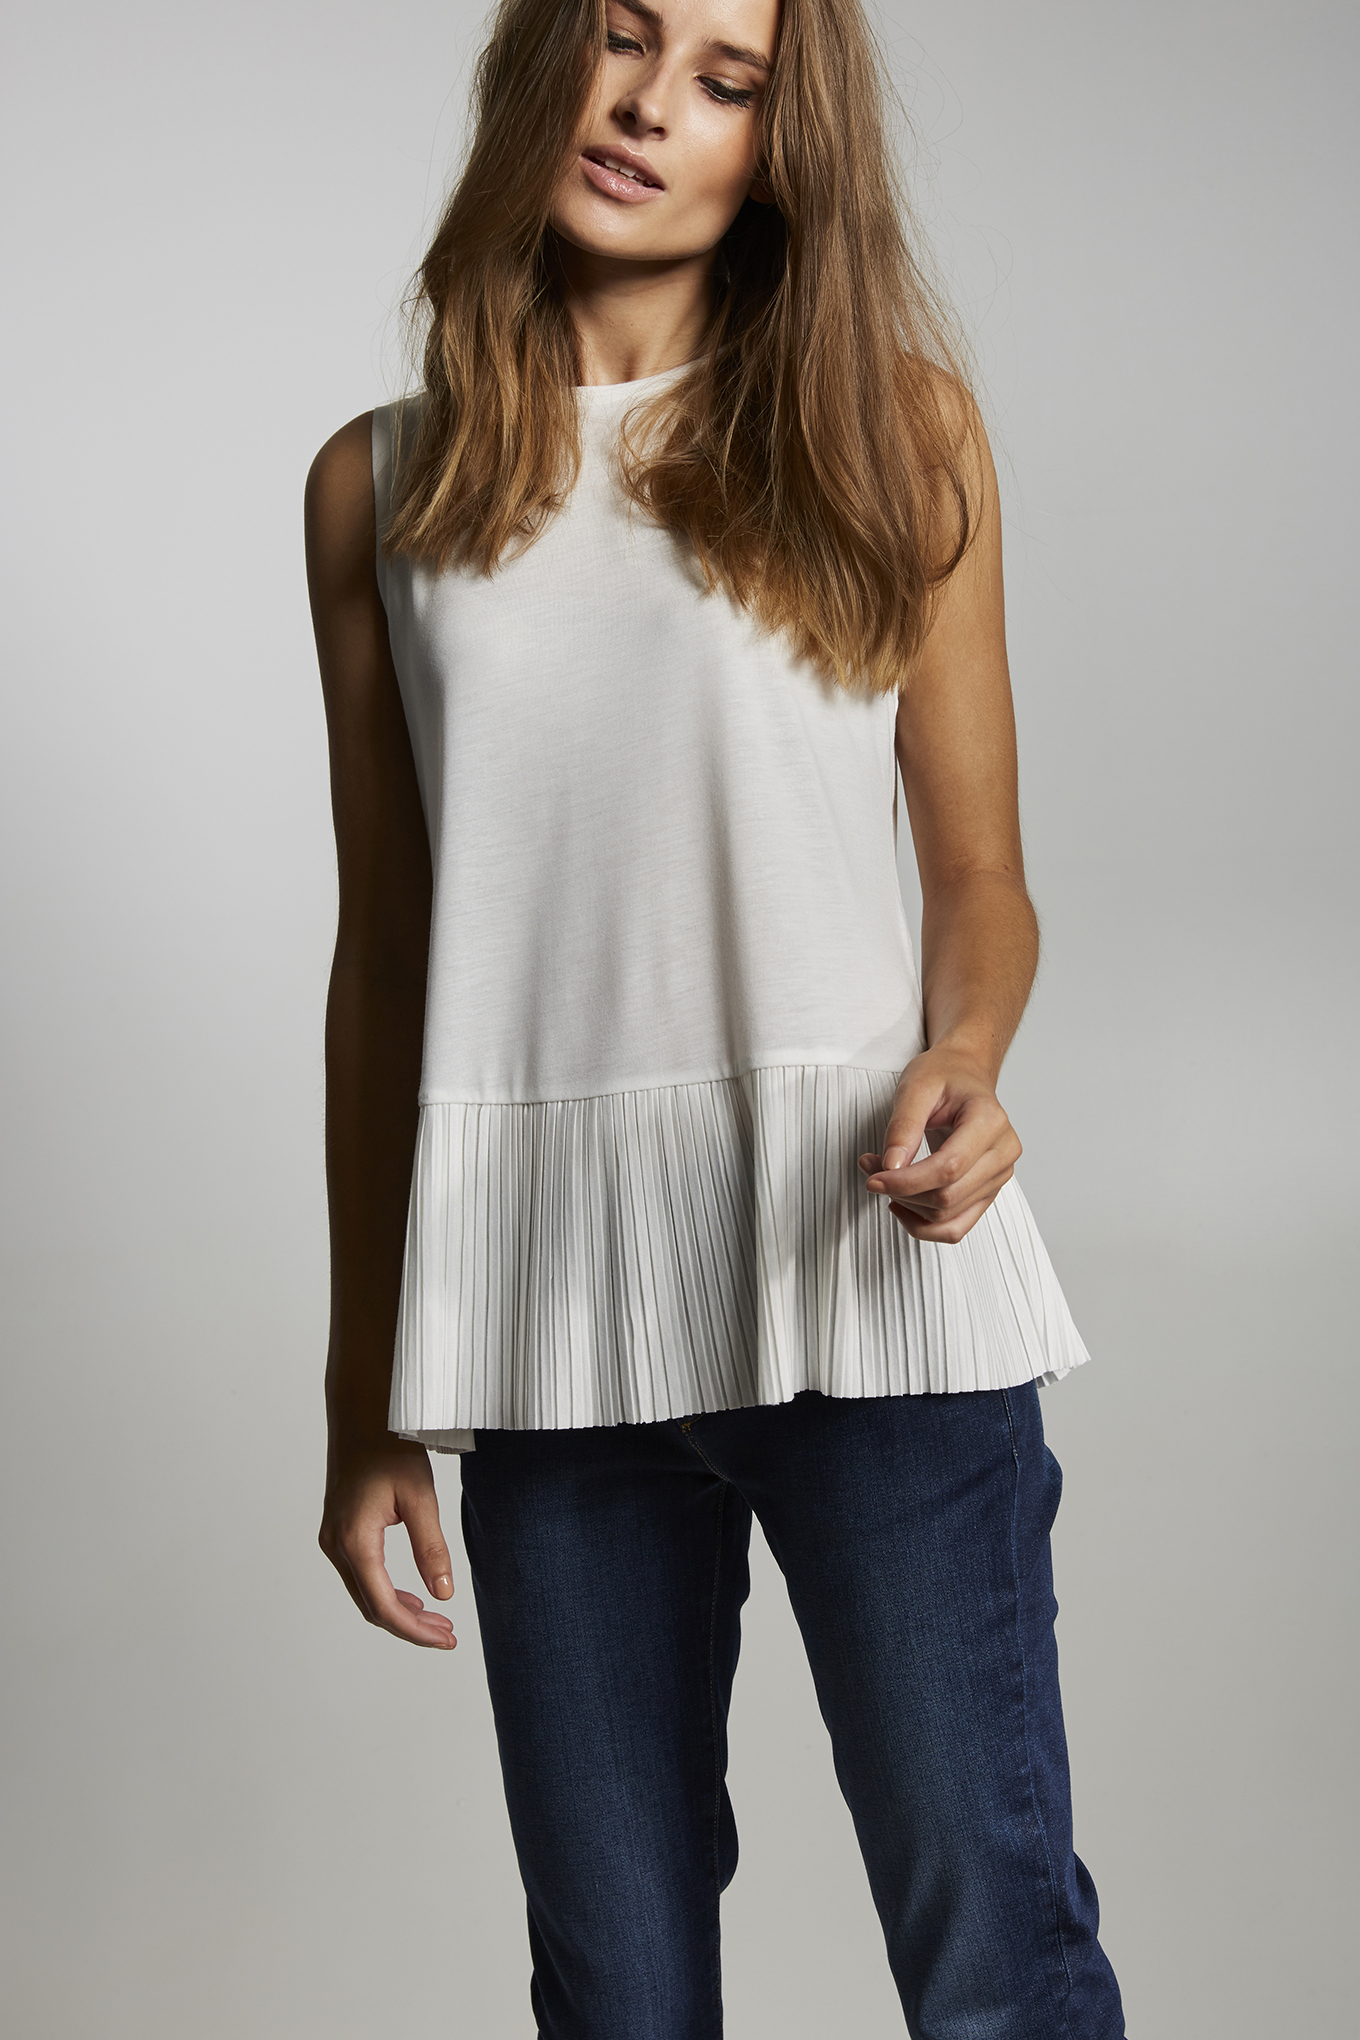 T-Shirt Branco Casual Mulher